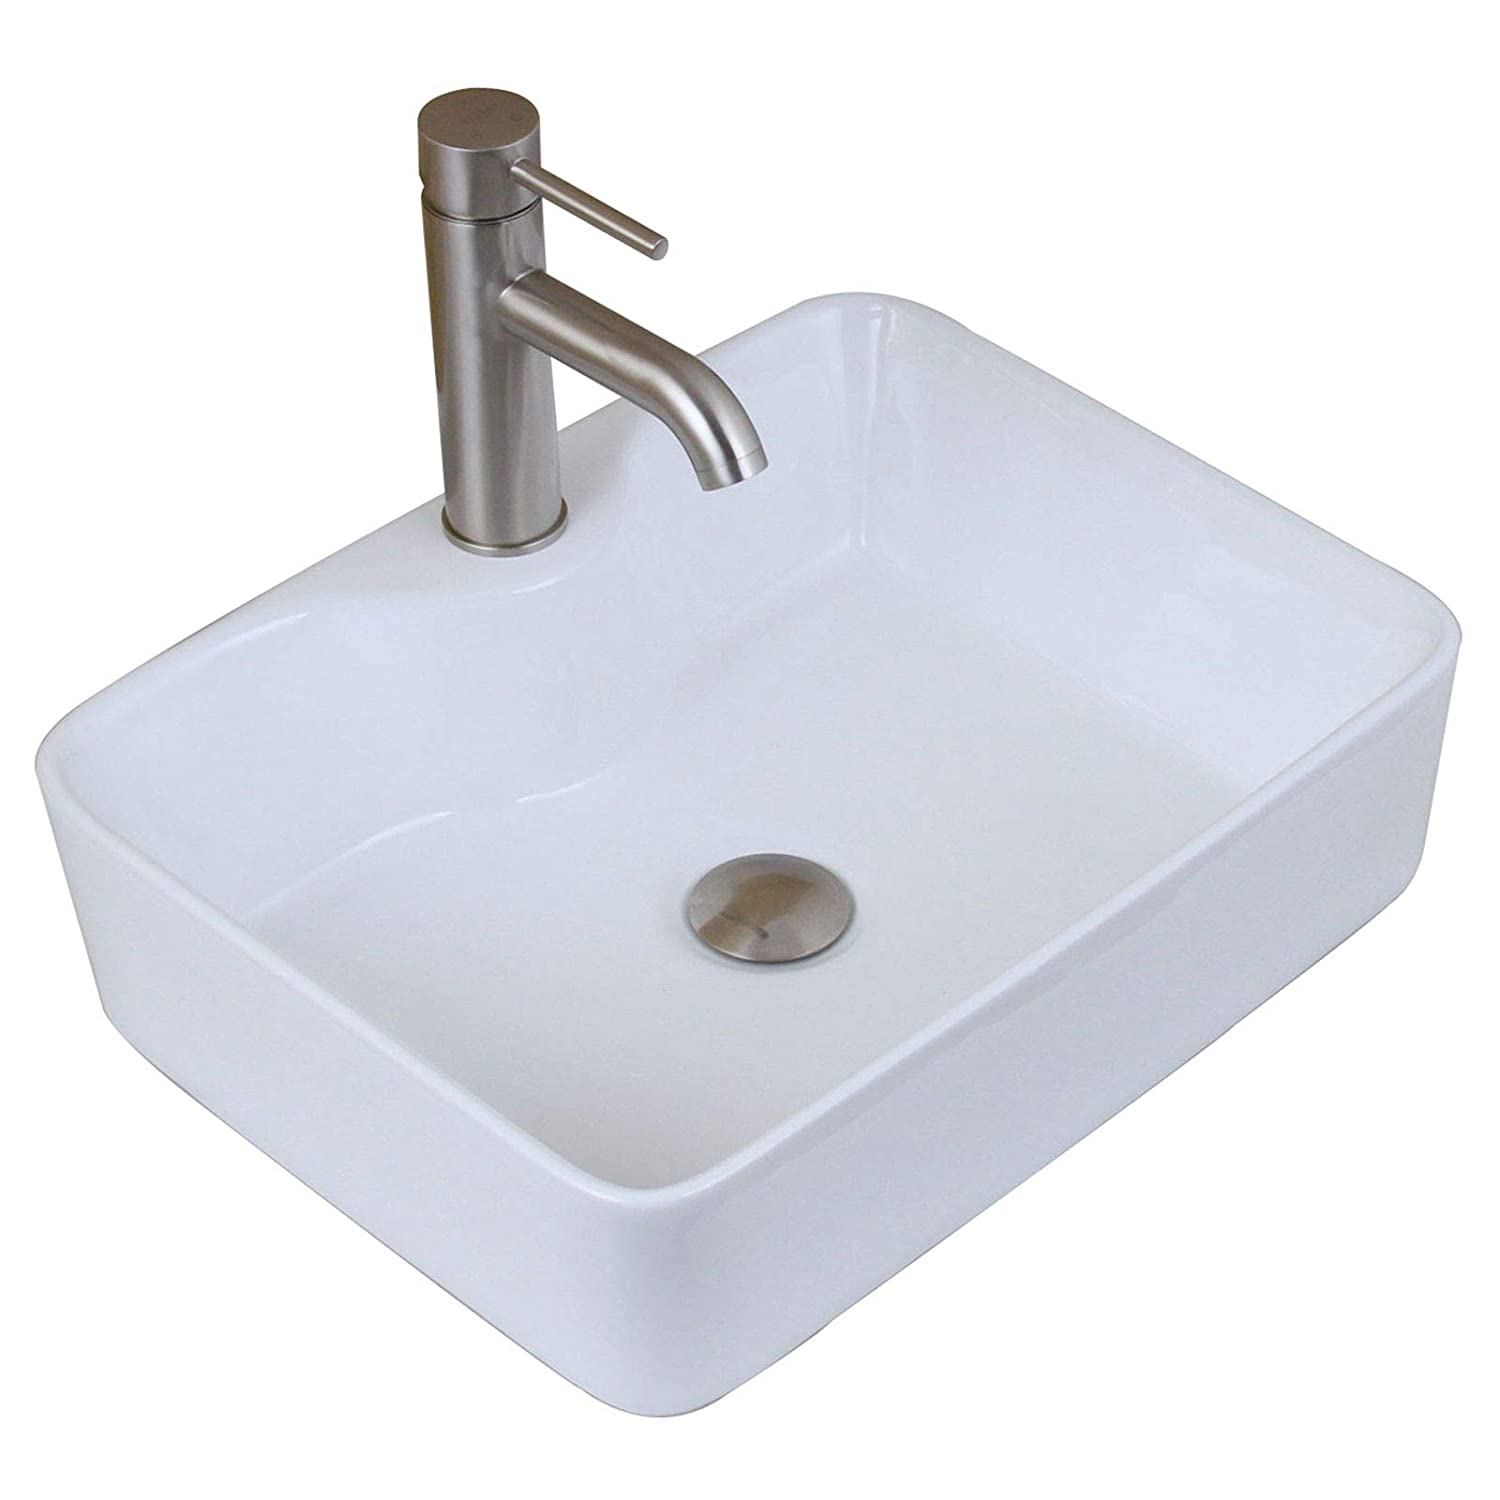 ELITE Bathroom Rectangle White Porcelain Ceramic Vessel Sink Short Brushed Nickel Faucet Combo